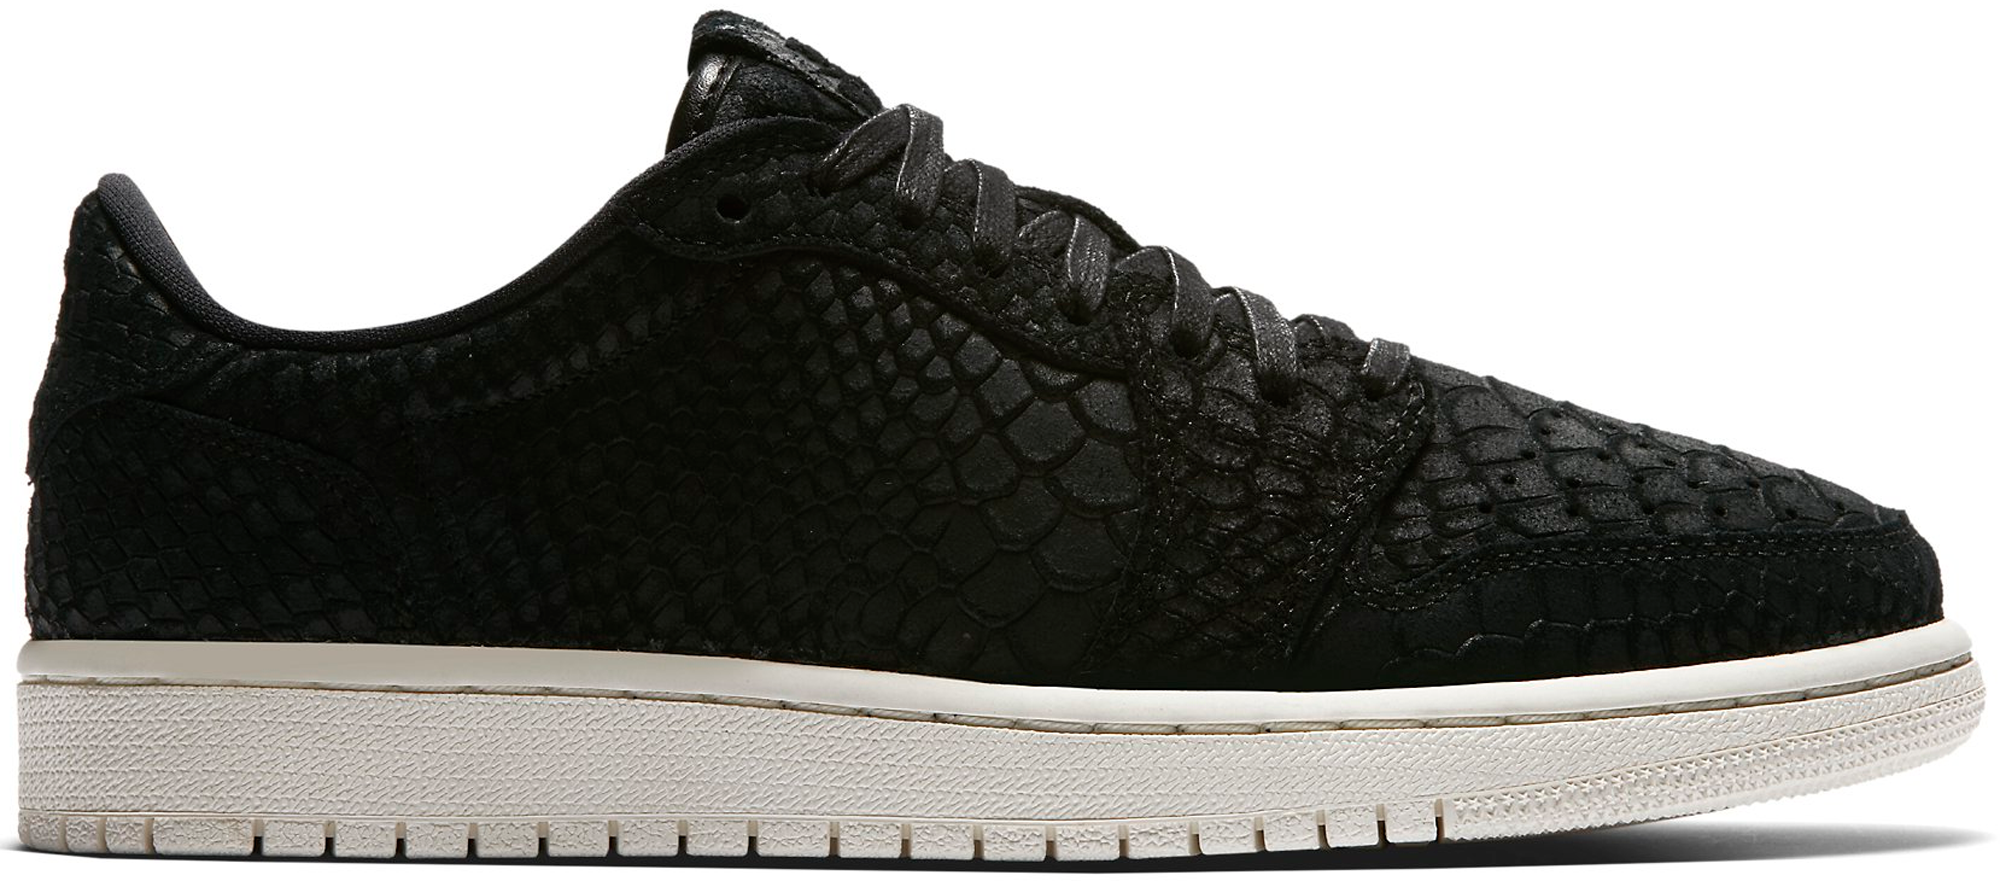 new concept 53548 e2c23 Women's Air Jordan 1 Retro Low NS Black Python - StockX News